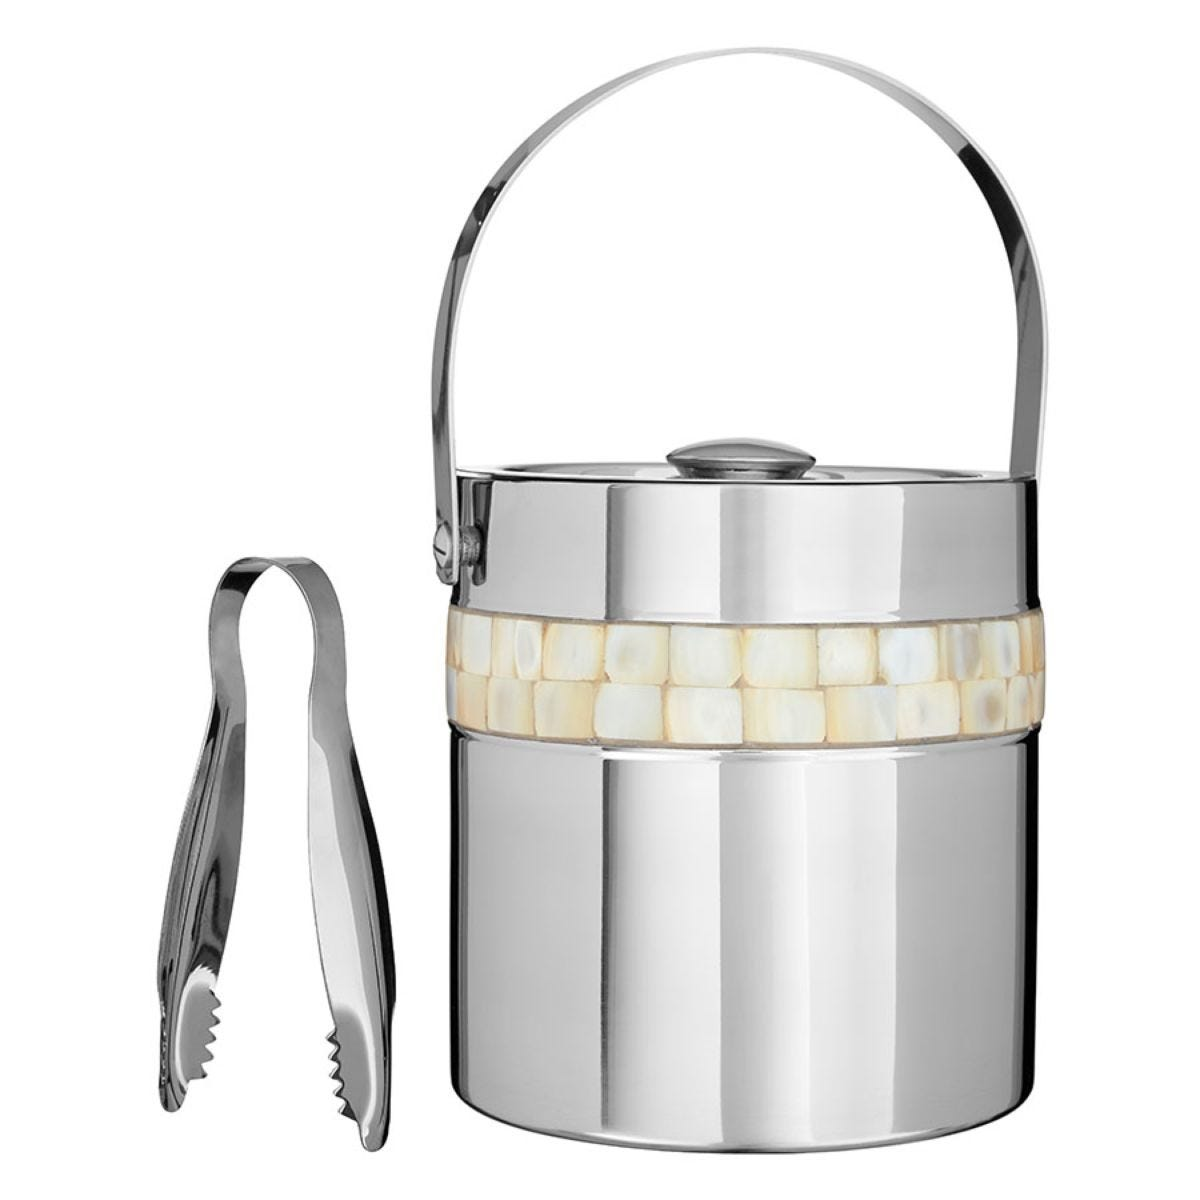 Premier Housewares Mother of Pearl Ice Bucket - Stainless Steel